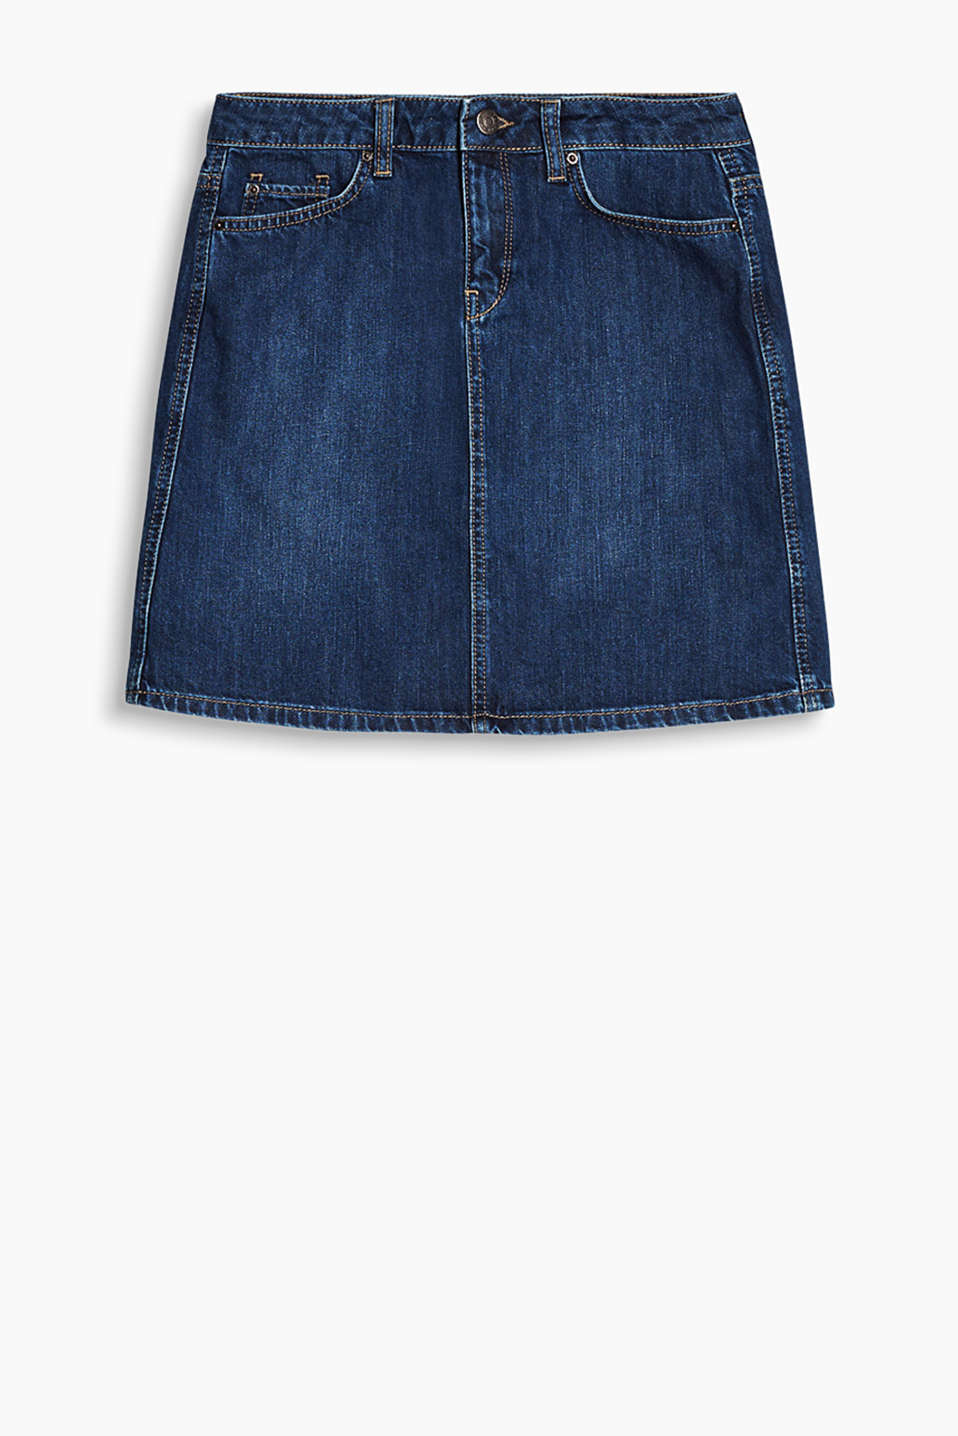 Slightly flared denim skirt with five pockets, 100% cotton